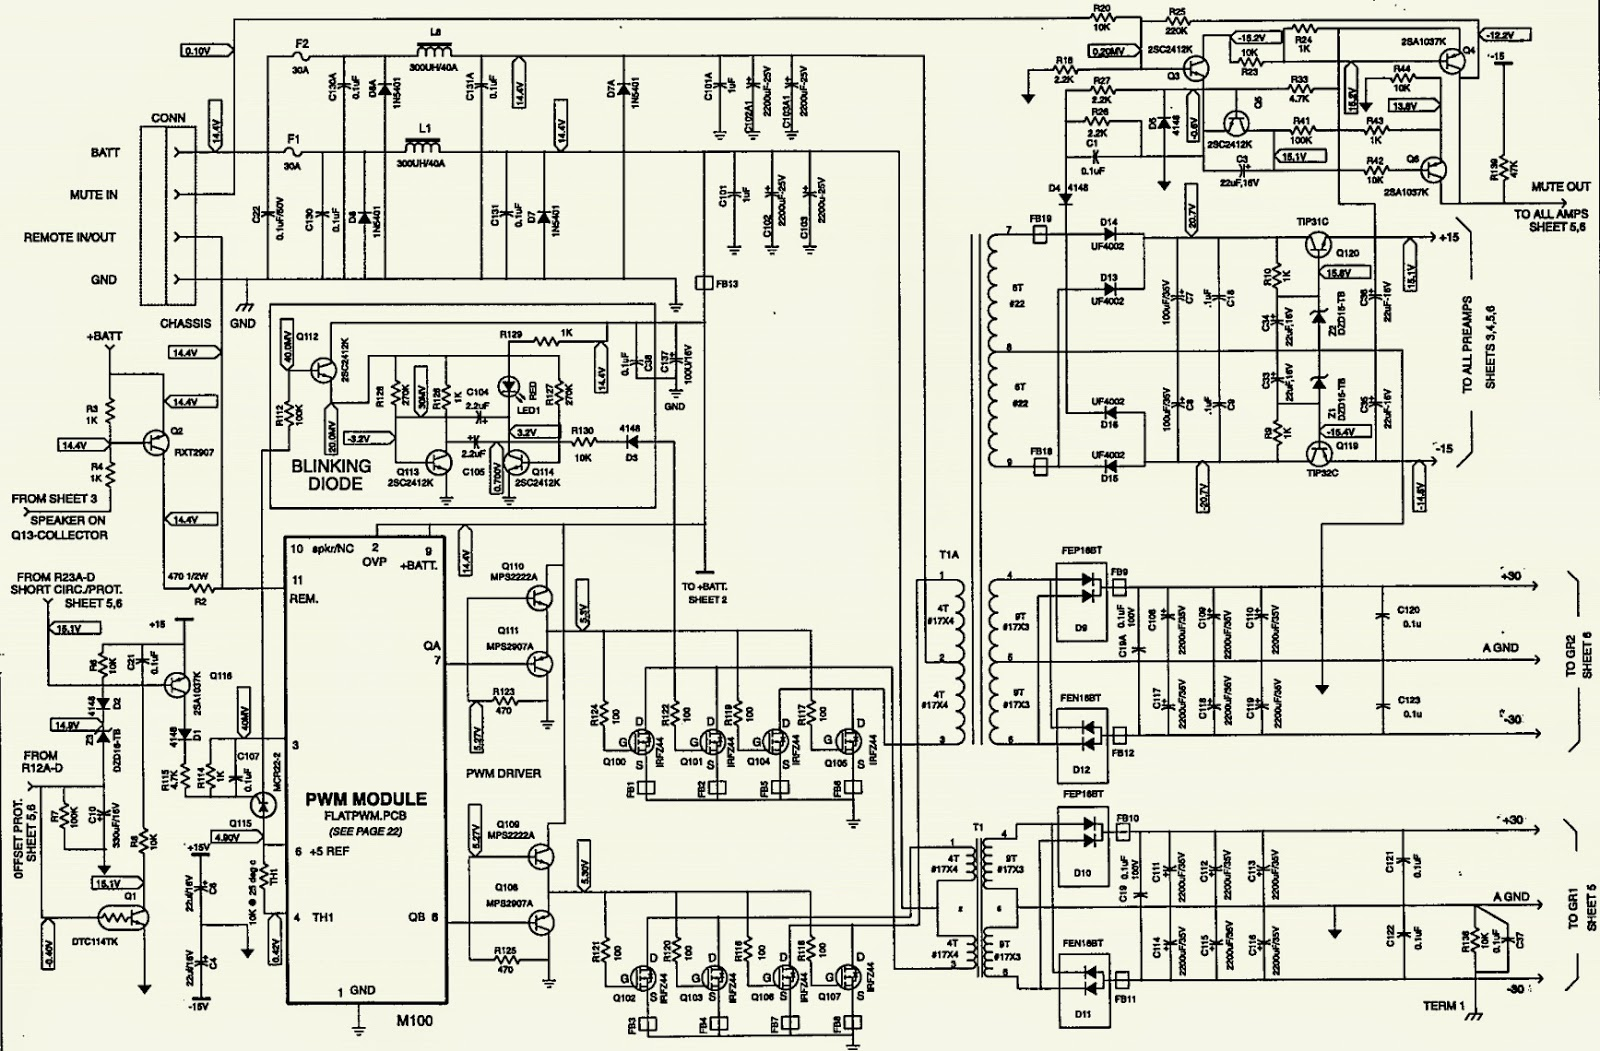 jbl jtq360 car audio schematic circuit diagram electro help rh electronicshelponline blogspot com Schematic Wiring Diagram Samsung HDTV Schematics Diagram